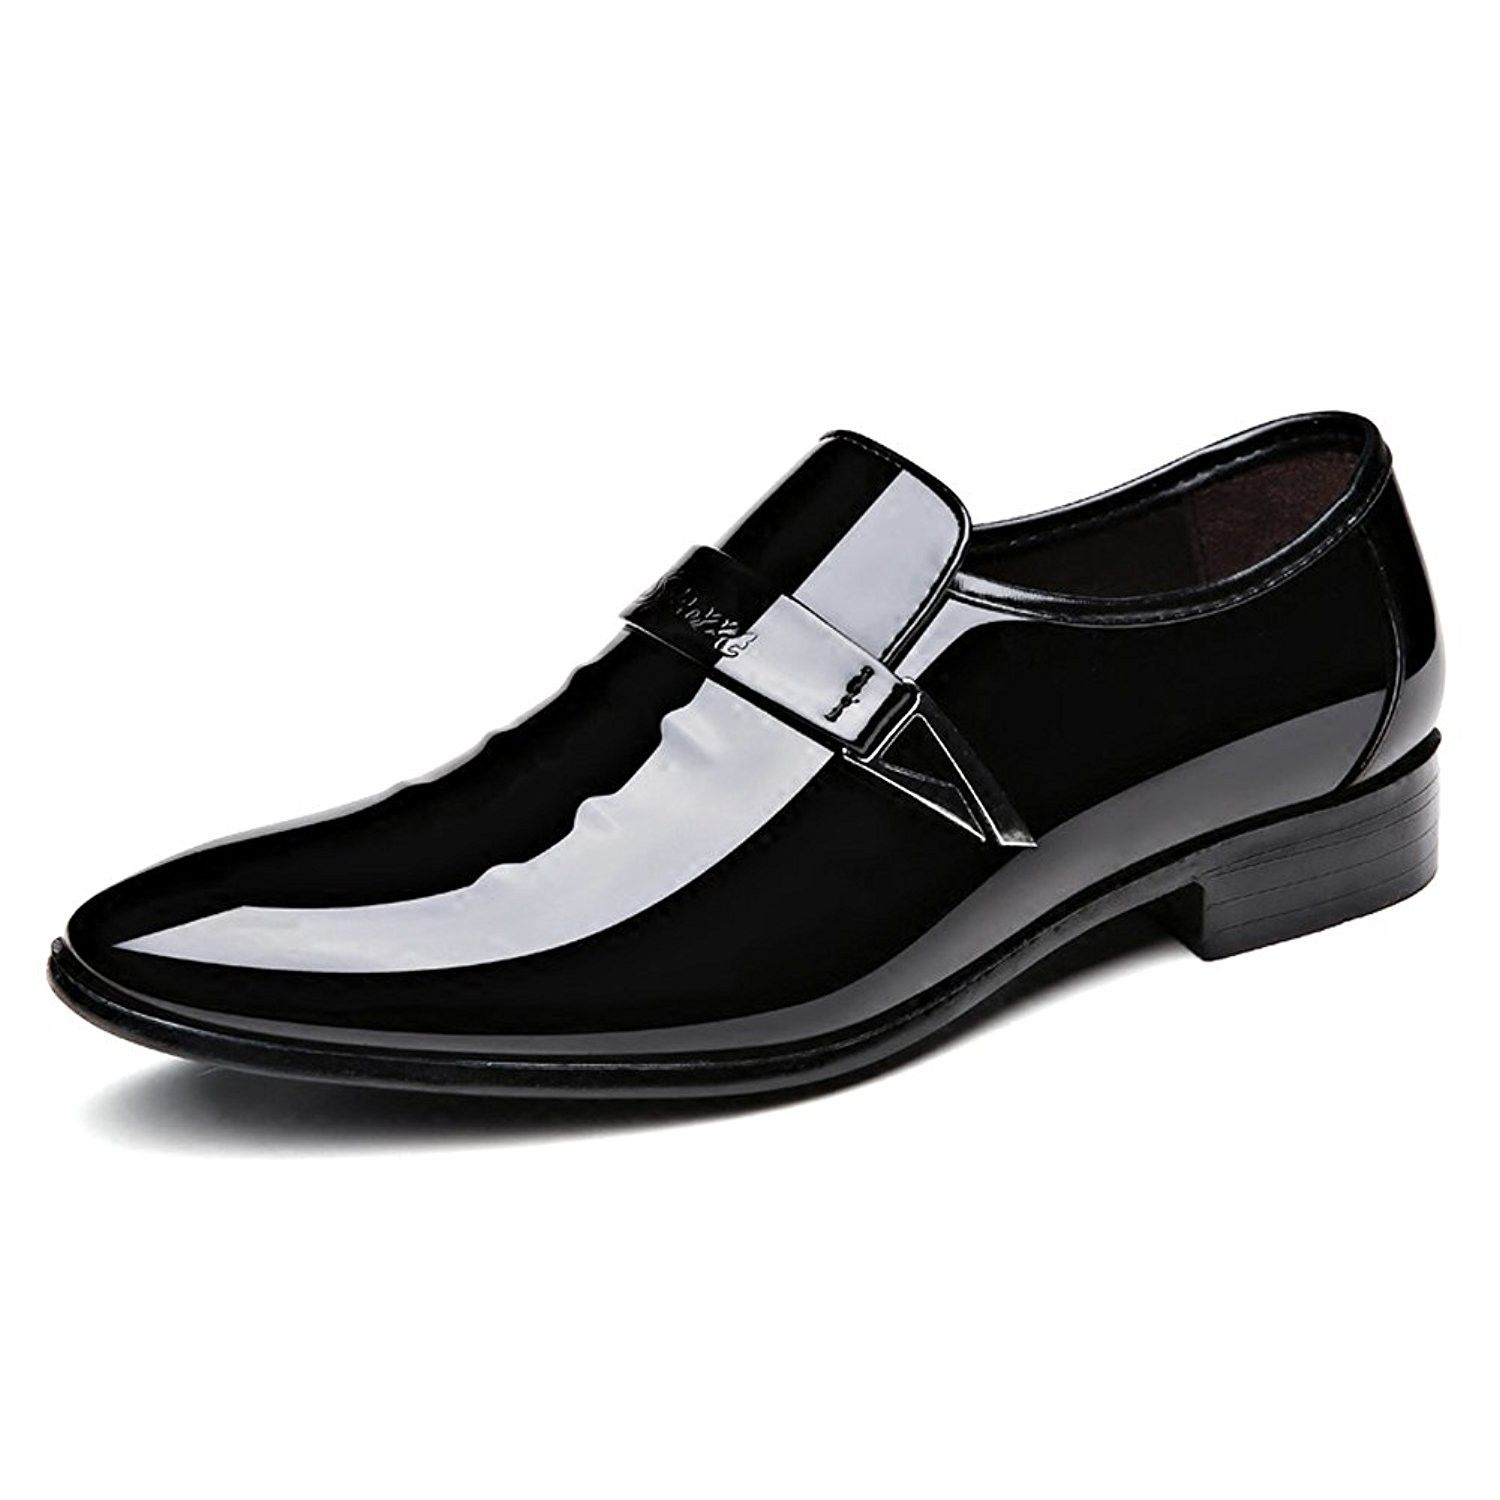 Men S Pointed Toe Tuxedo Dress Shoes Casual Slip On Loafer Black C81847rhe9q Tuxedo Shoes Loafers Black Casual Shoes [ 1500 x 1500 Pixel ]